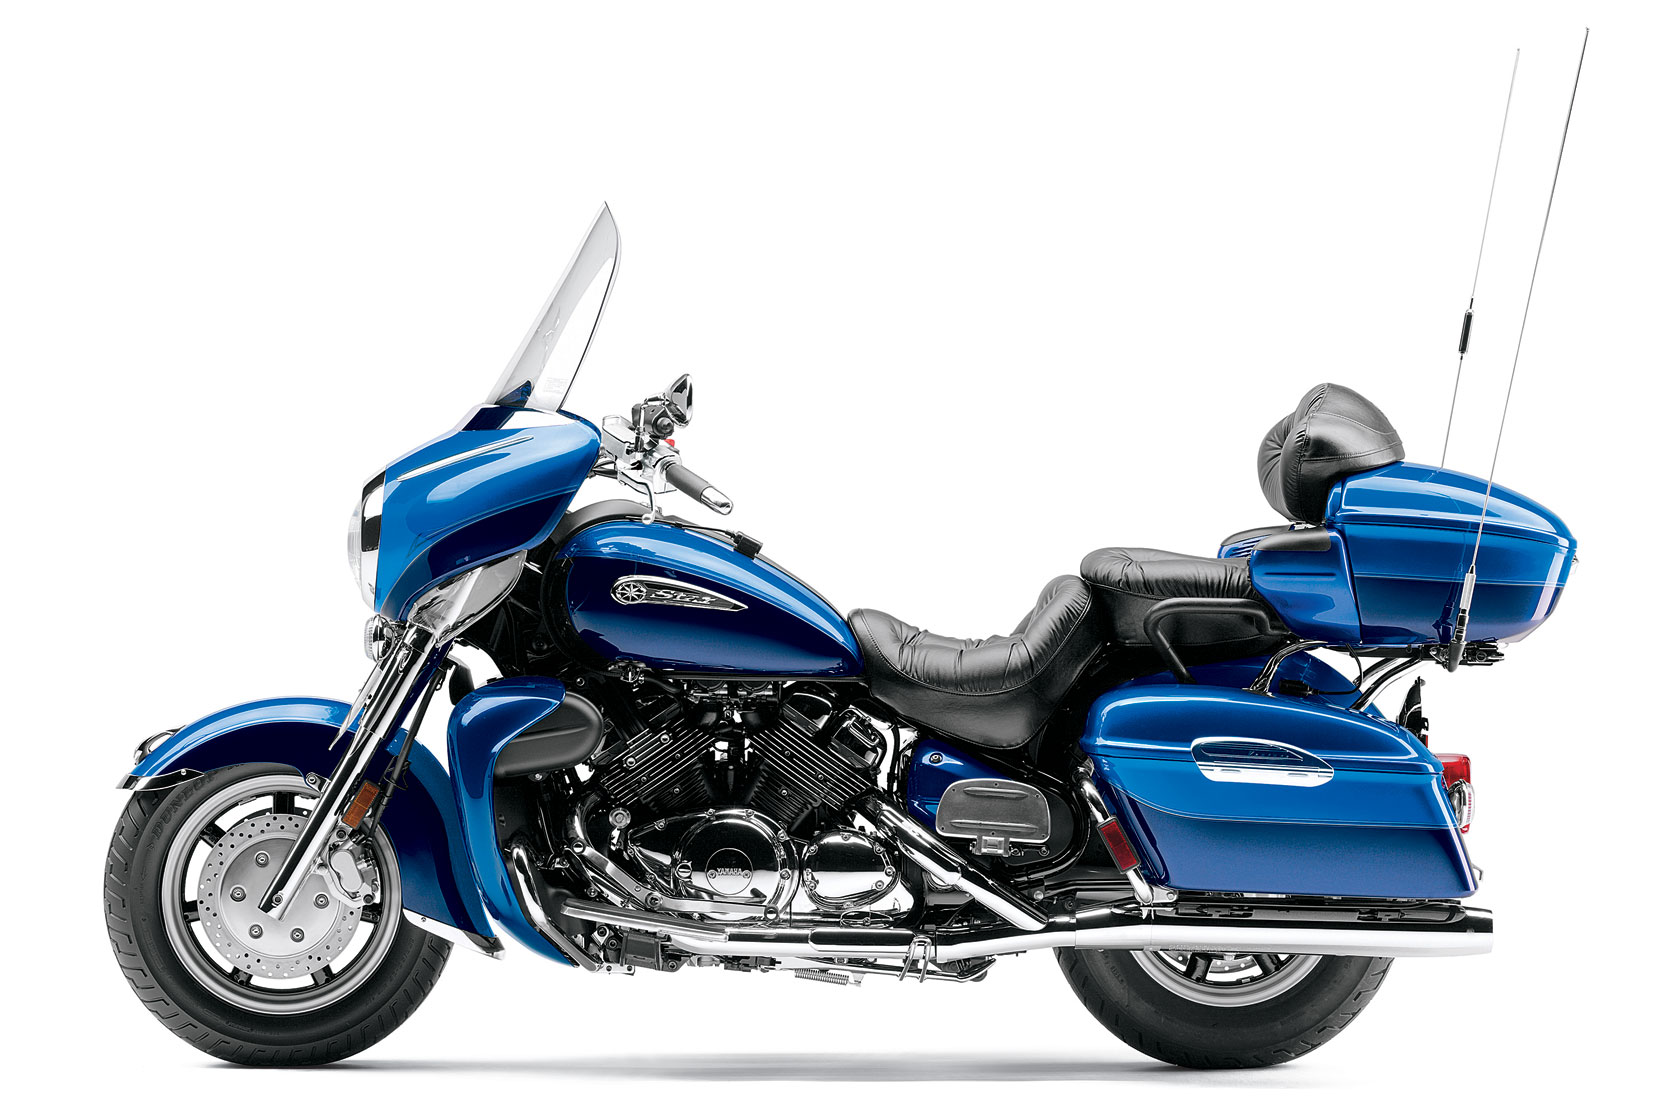 Yamaha Royal Star Venture Xvz Lgw further Yamaha Star Venture Detail Tail Trunk in addition Top also Yamaha Royal Star Venture moreover Wallpaper Mcy Cal Sept Oct. on yamaha motorcycles royal star venture